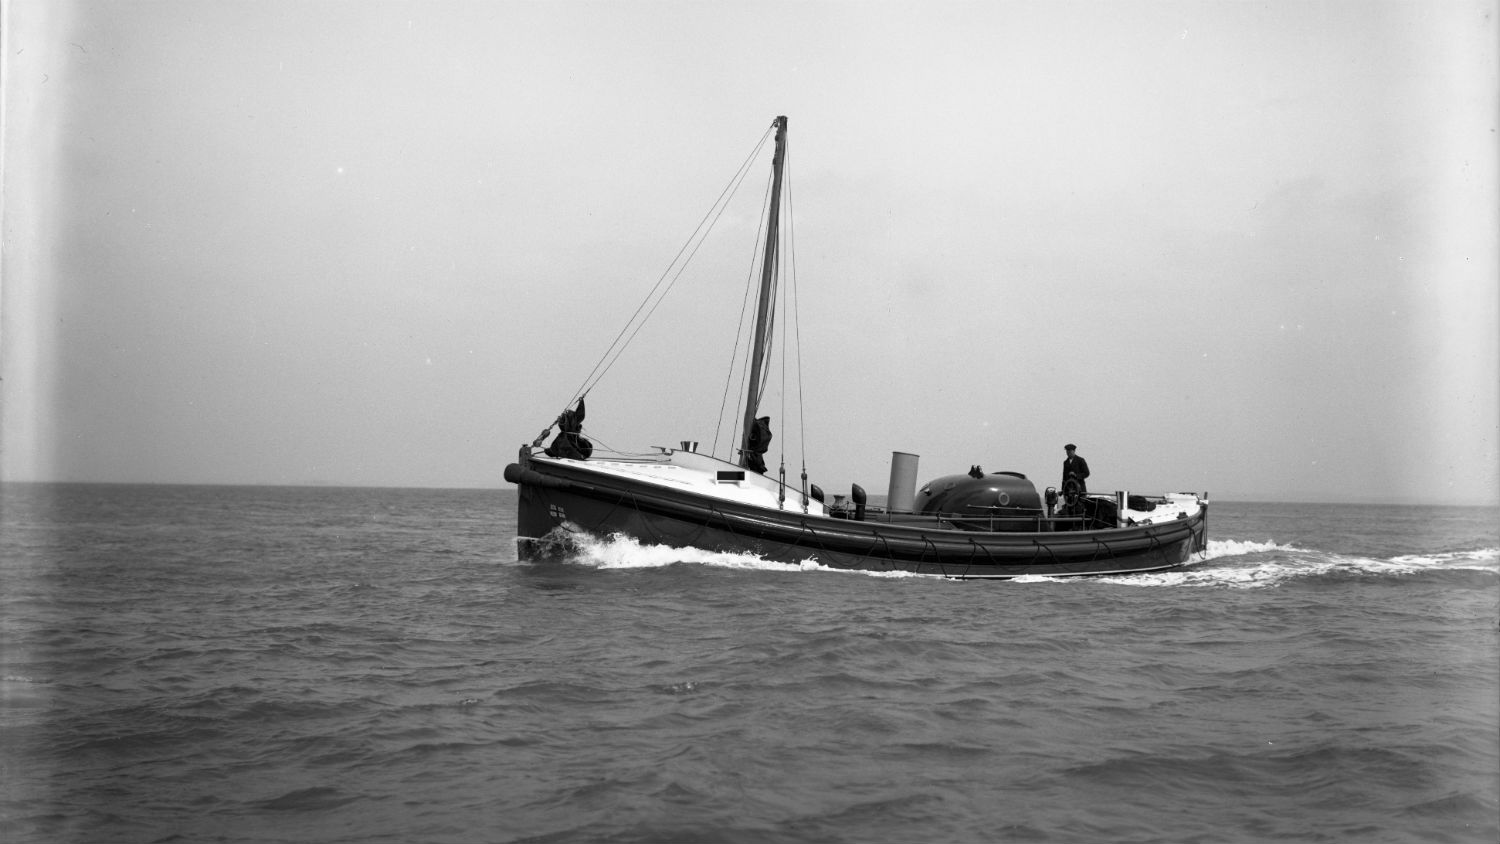 Black and white image of Southend-on-Sea lifeboat, Greater London (Civil Service No.3), while on trials